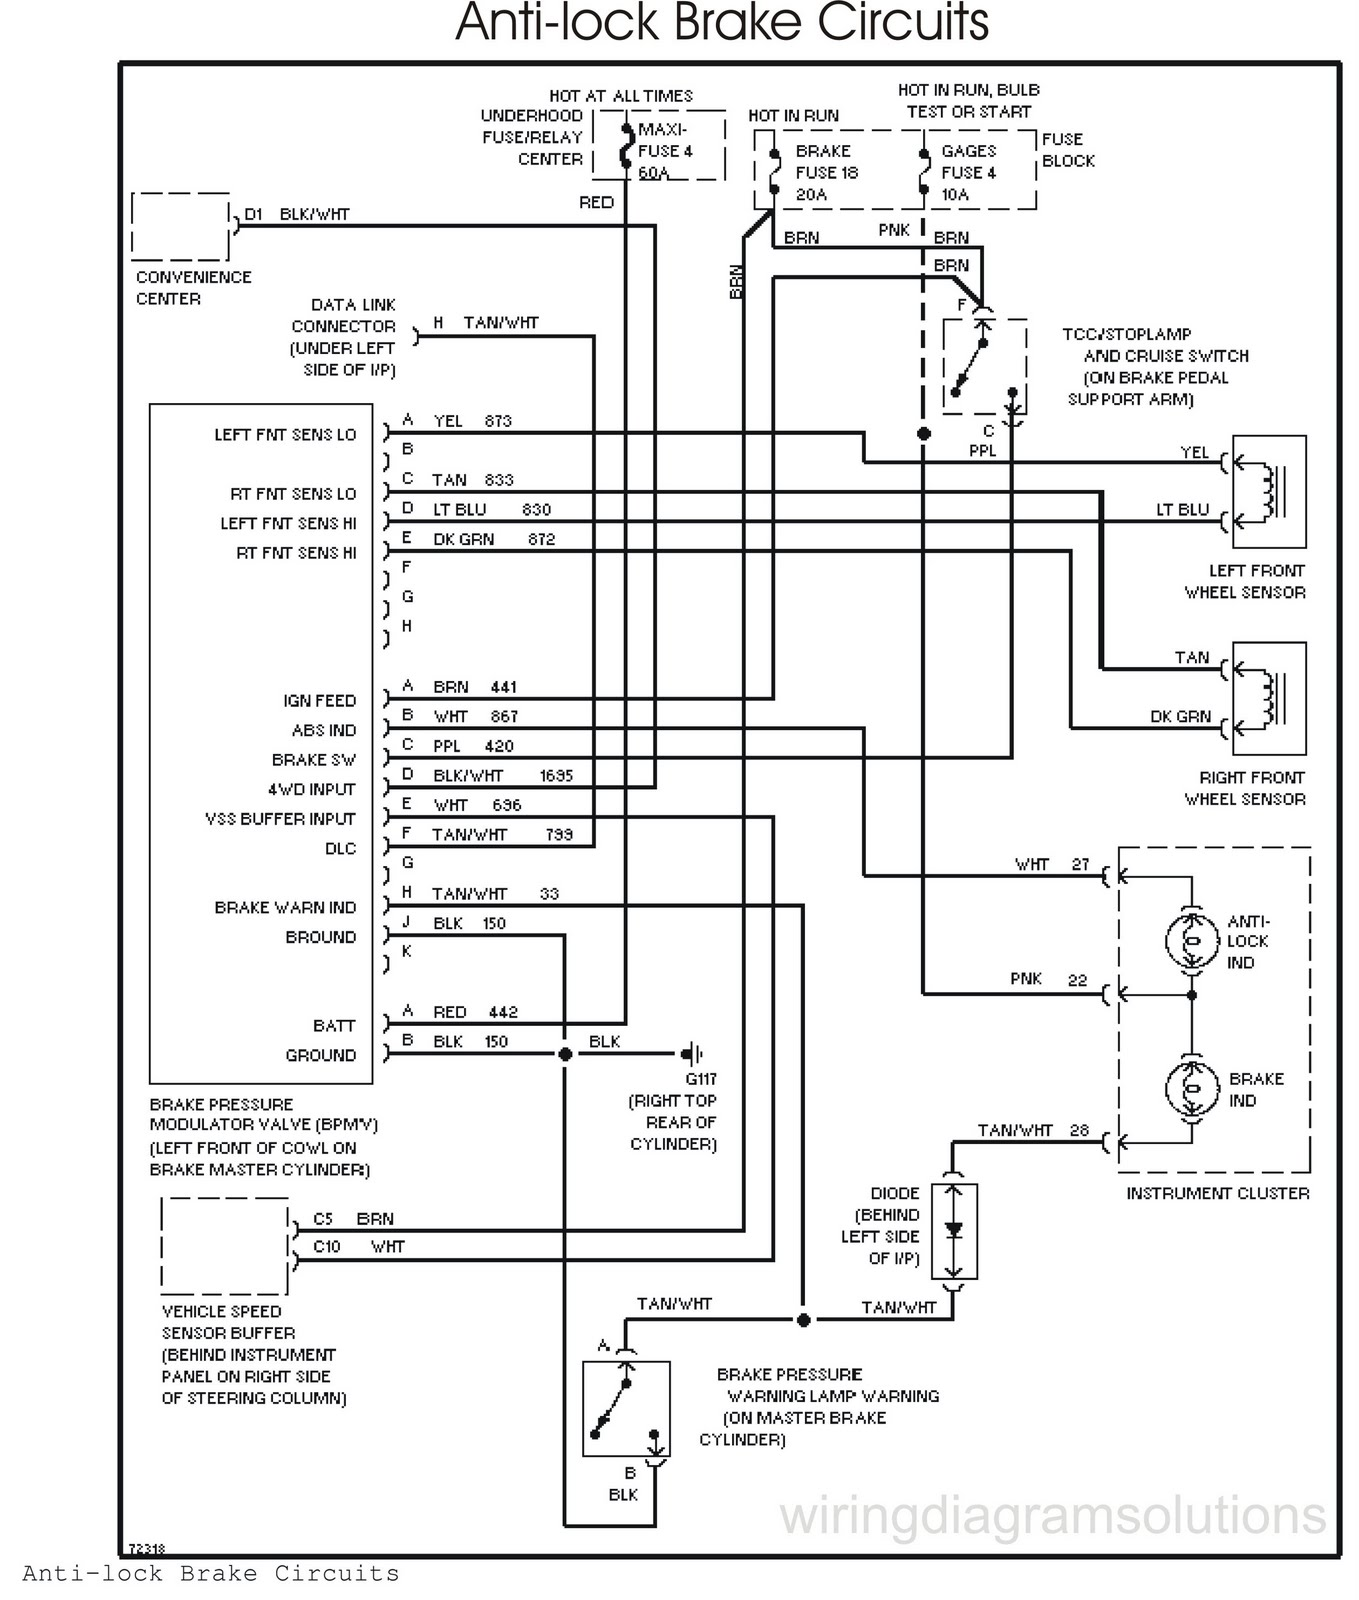 98 Chevy Tahoe Wiring Diagram Swm 5 Lnb The 1995 Chevrolet Schematic Anti Lock Brake